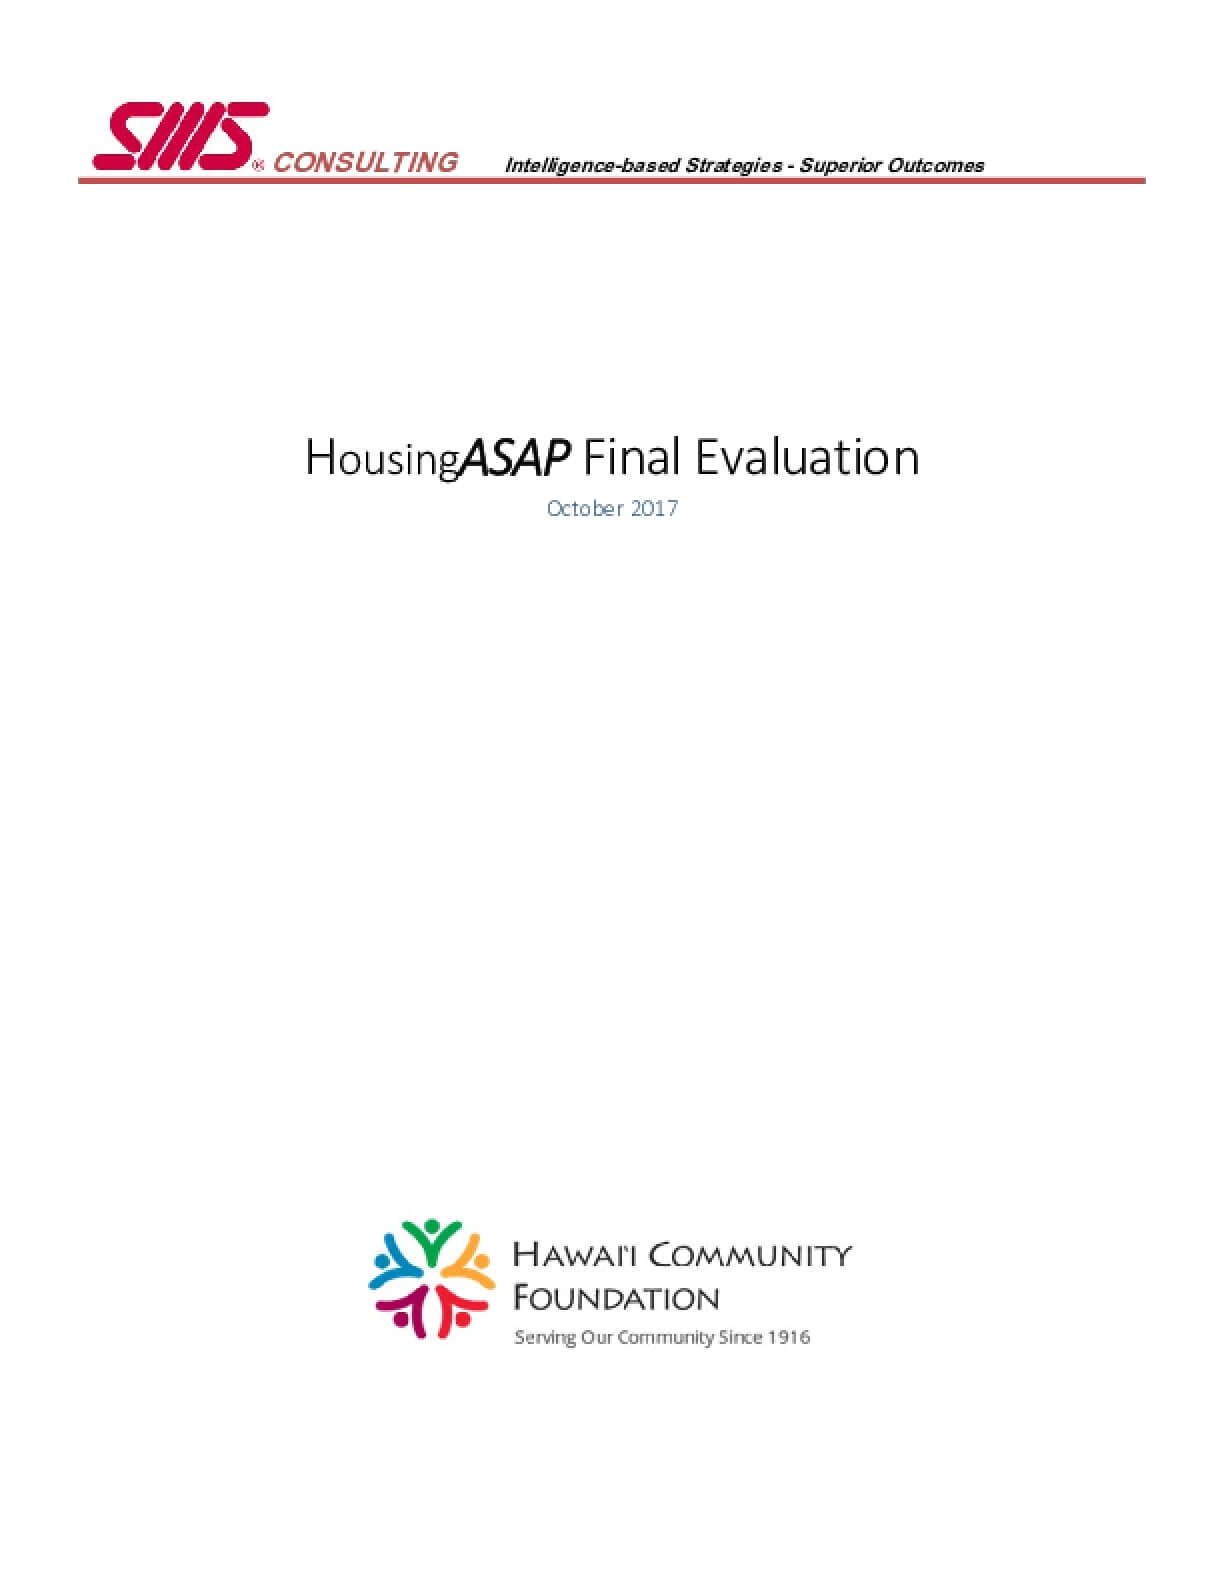 HousingASAP Final Evaluation